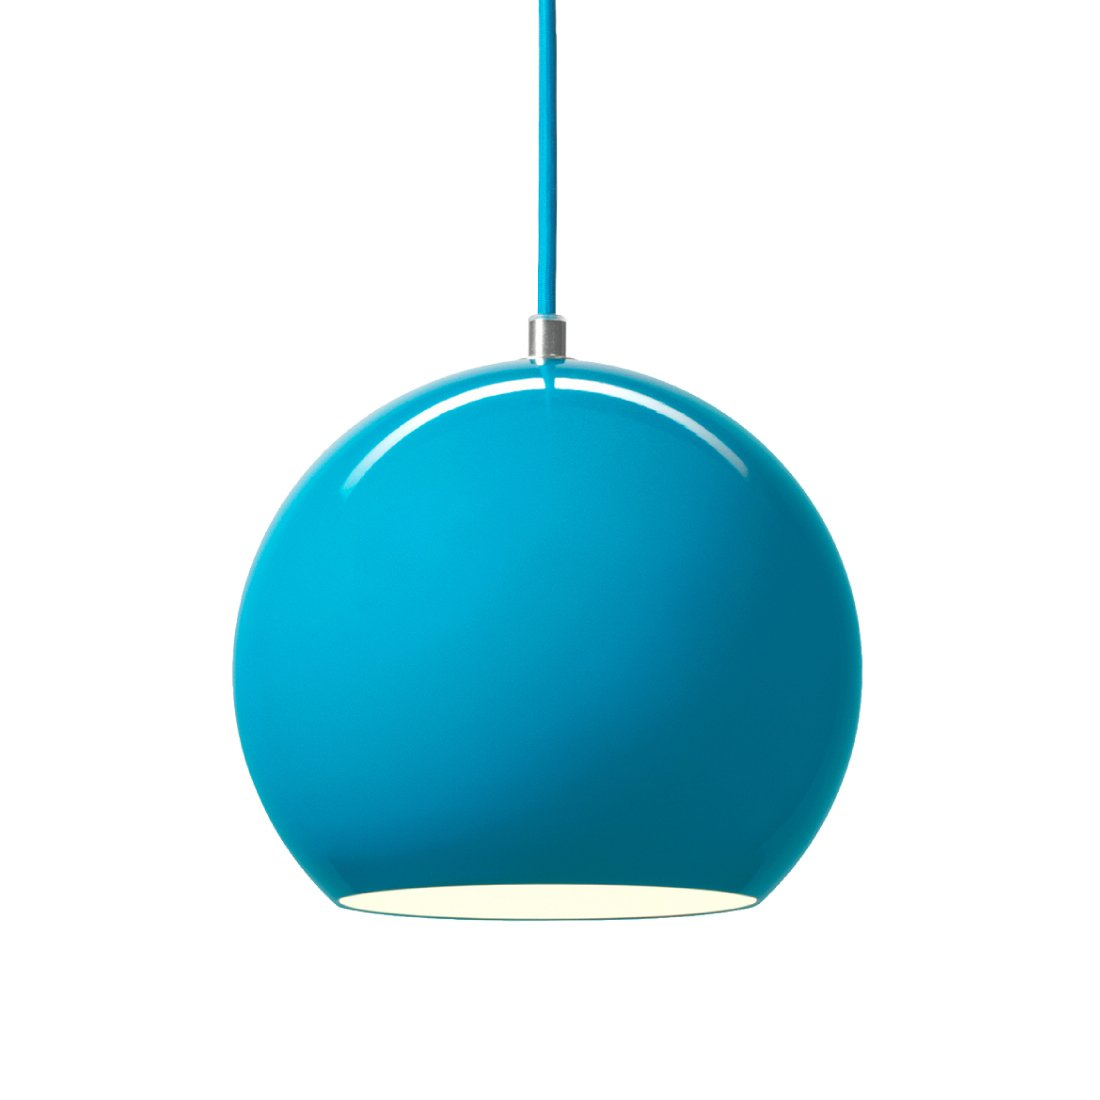 &Tradition Topan VP6 Hanglamp Turquoise